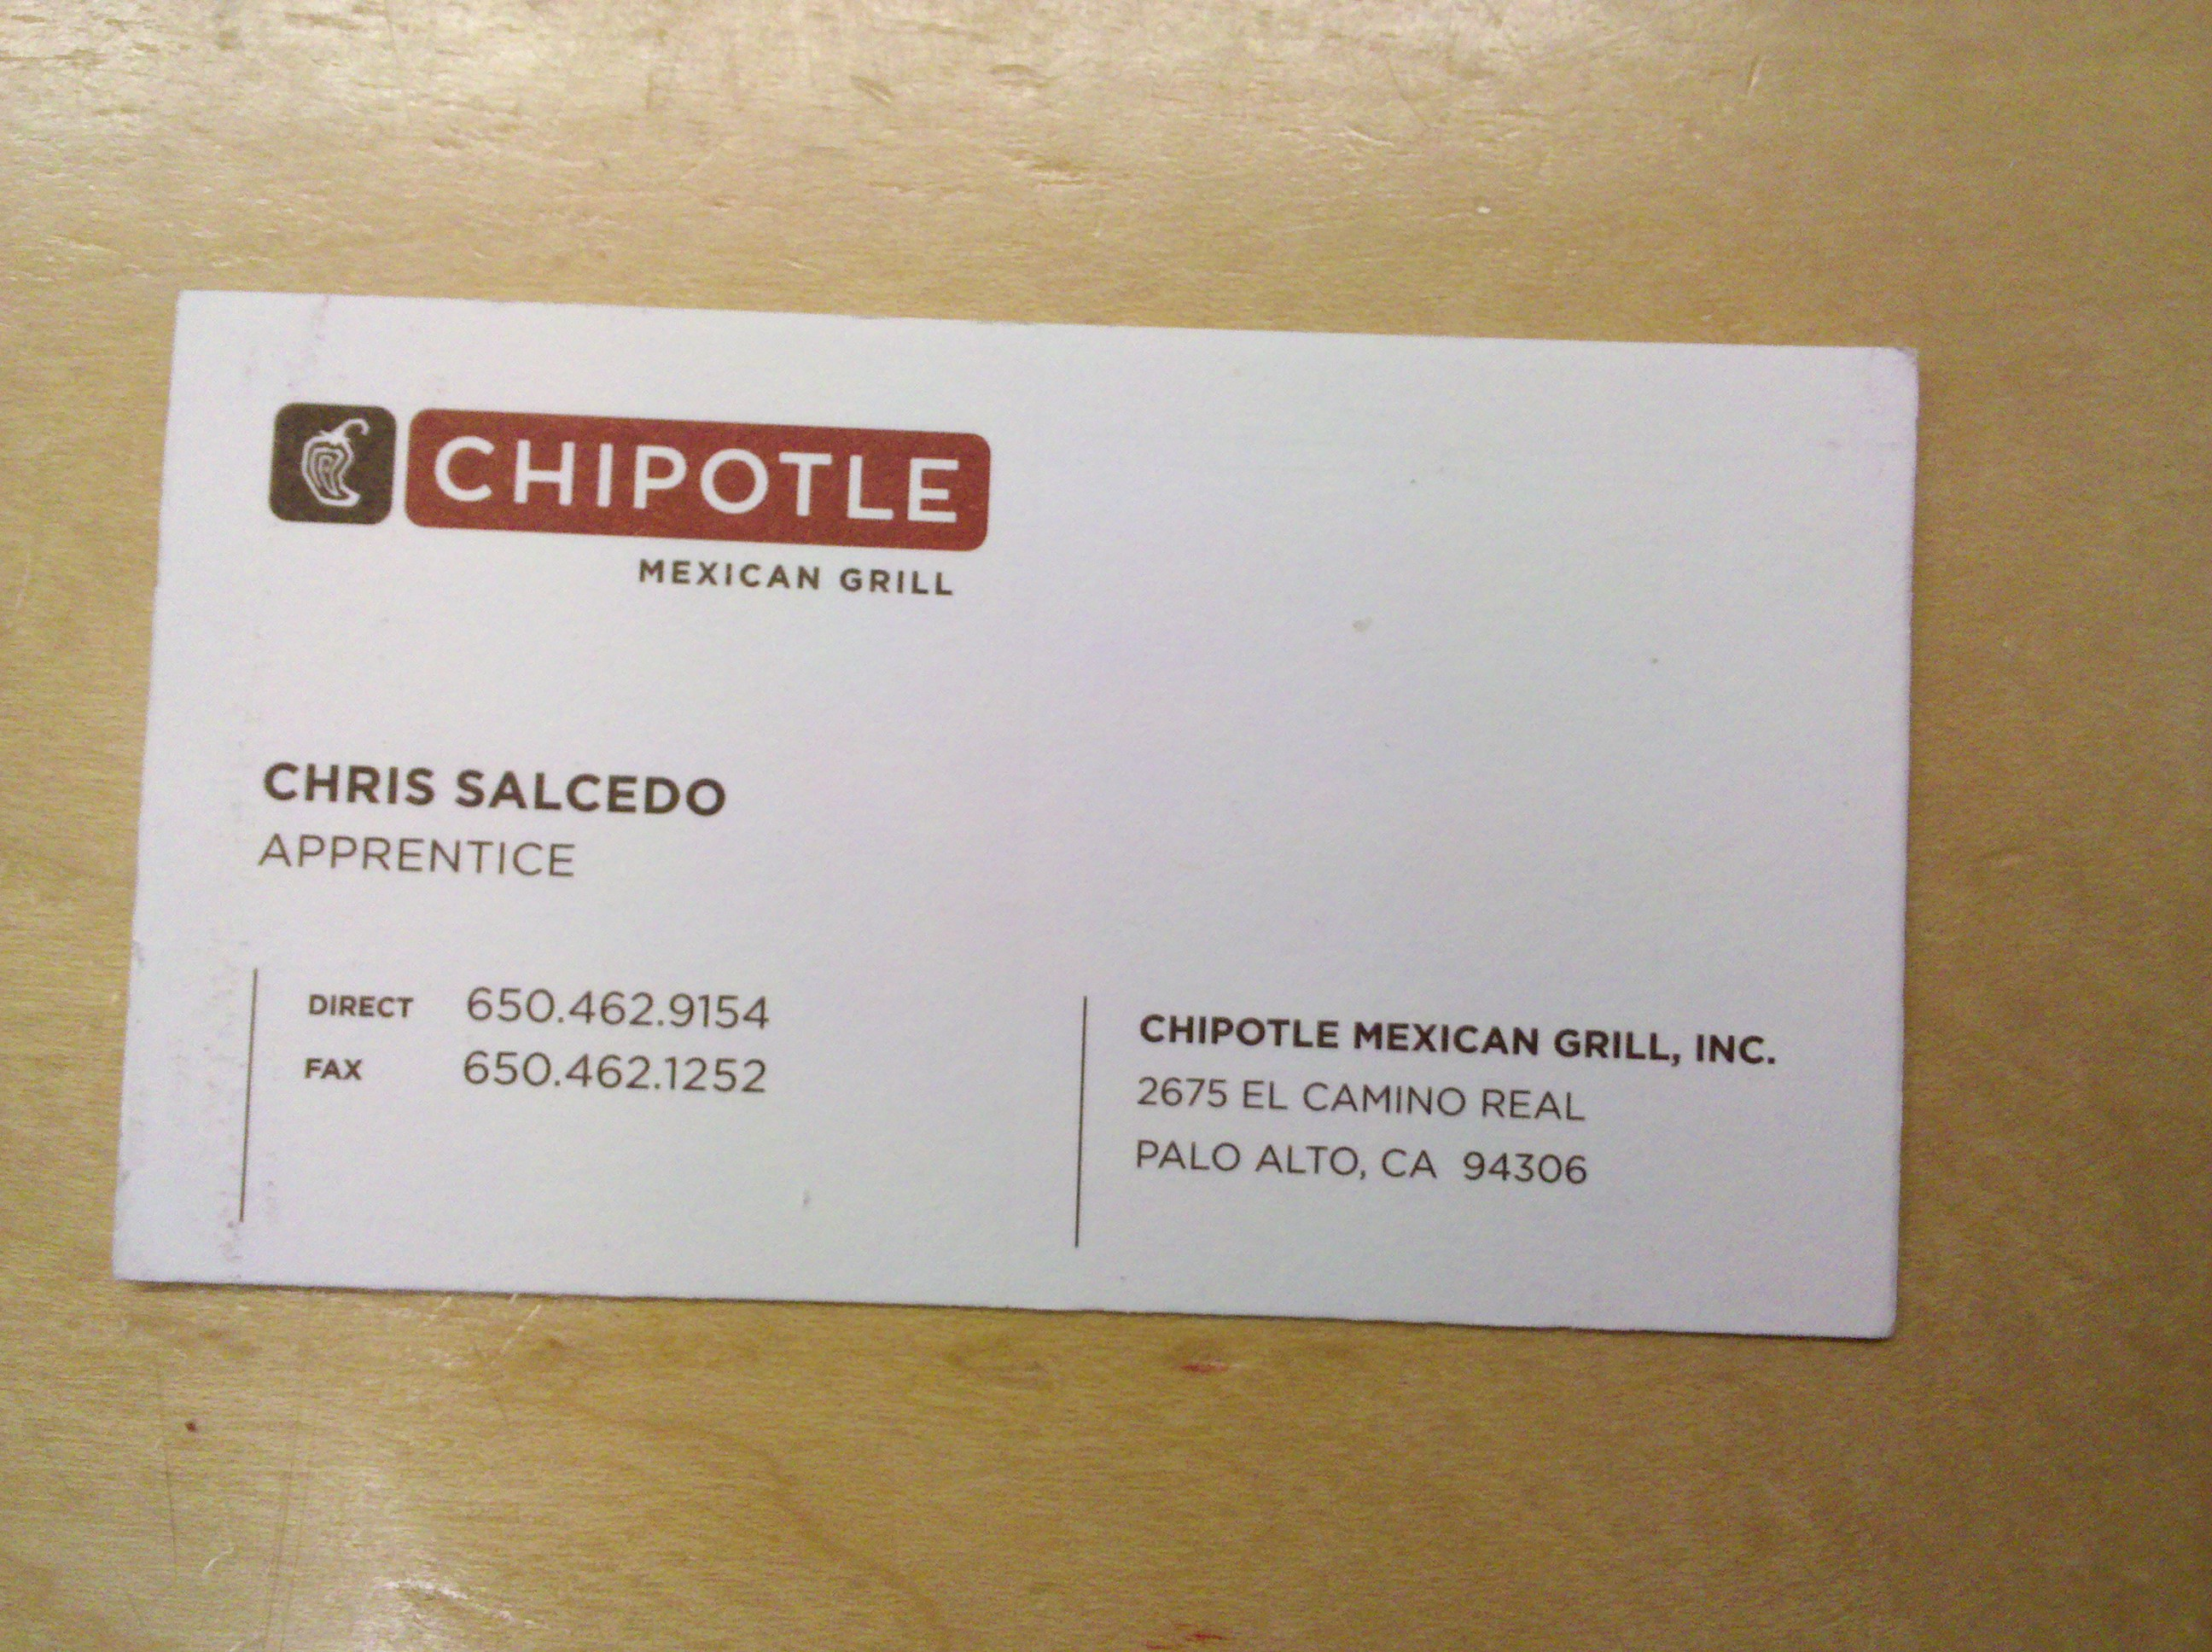 3x5 business cards